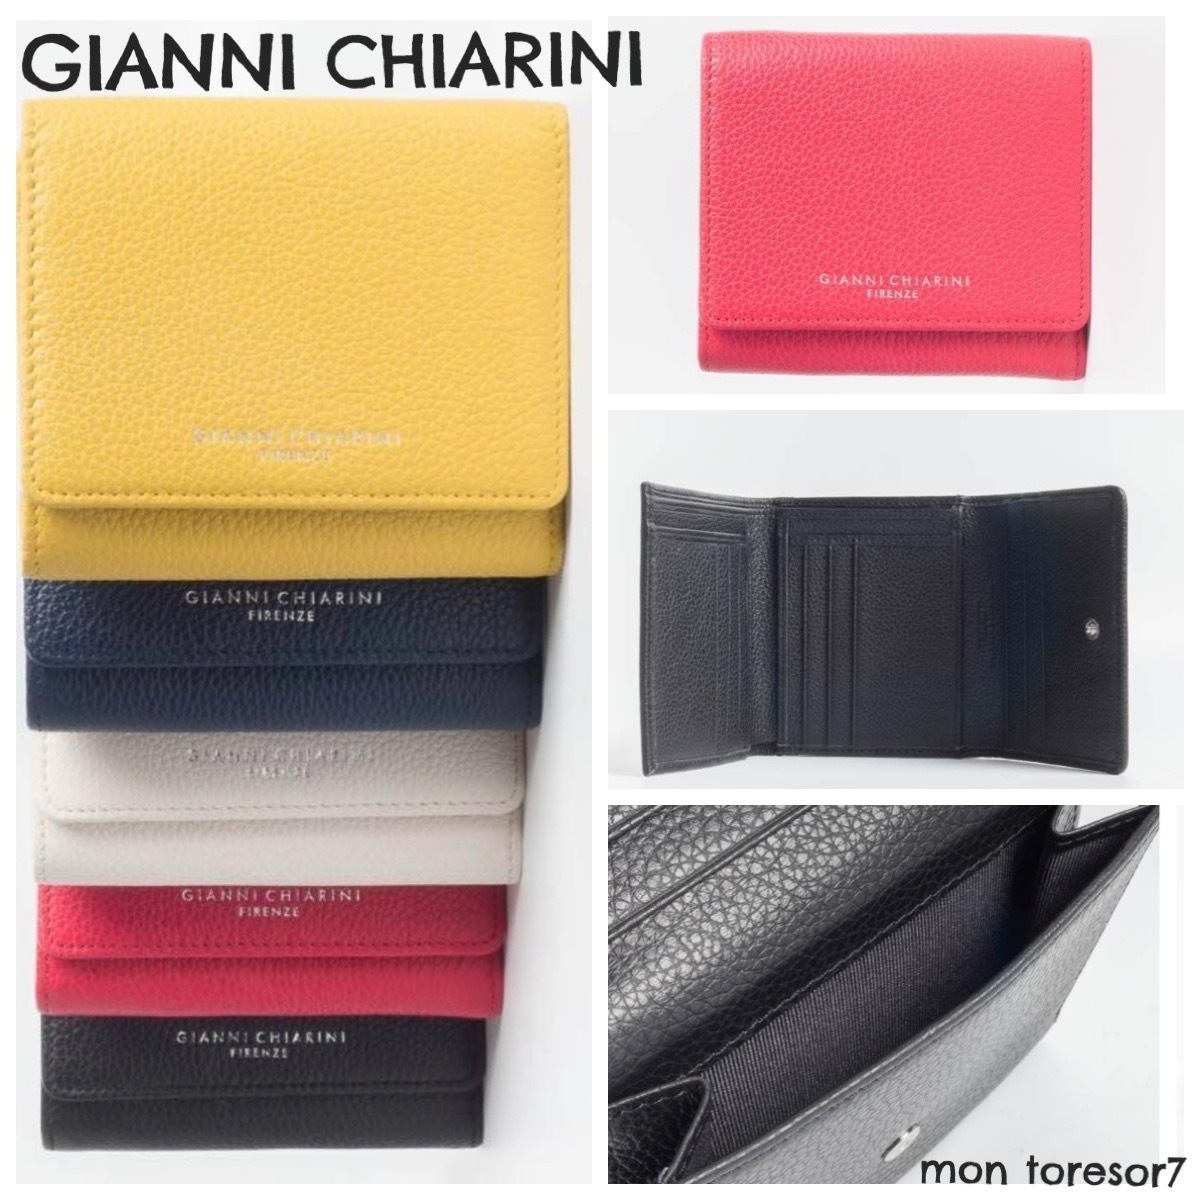 shop gianni chiarini wallets & card holders